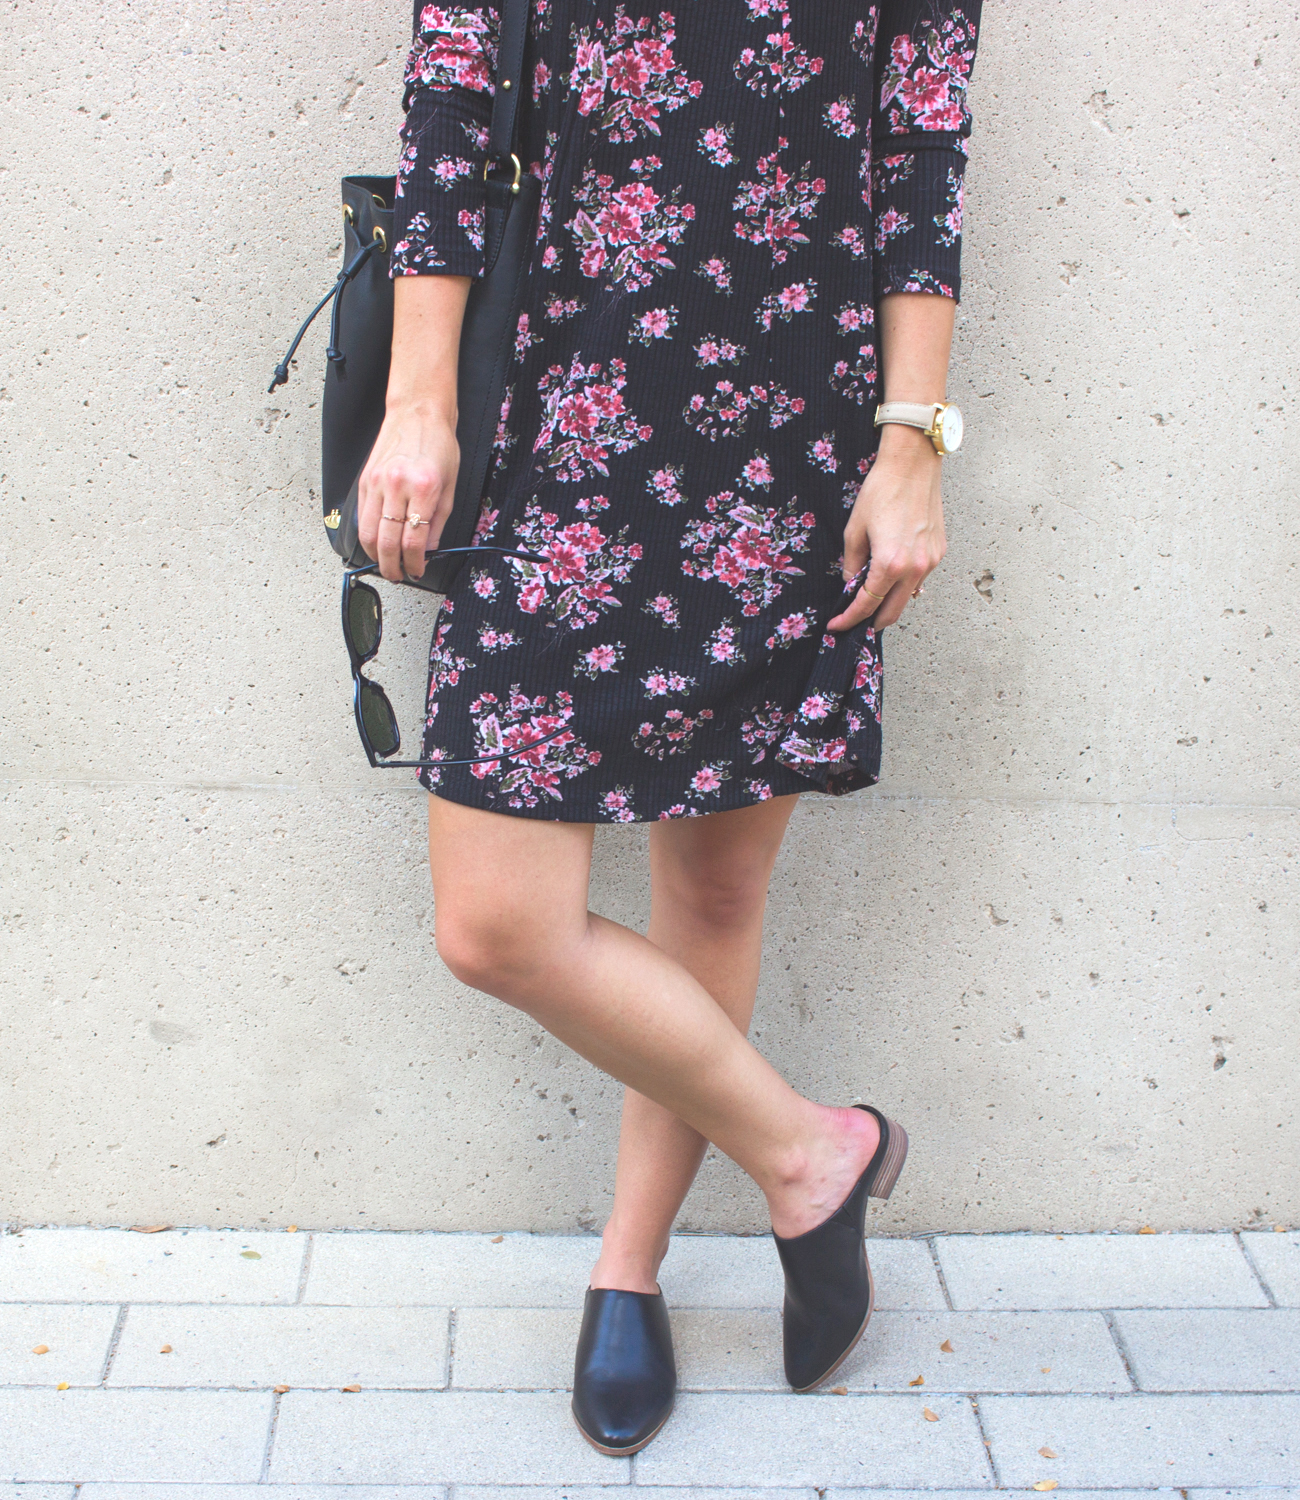 livvyland-blog-olivia-watson-lush-floral-black-shift-dress-brahmin-bucket-bag-ray-ban-wayfarer-sunglasses-madewell-slip-on-mules-5